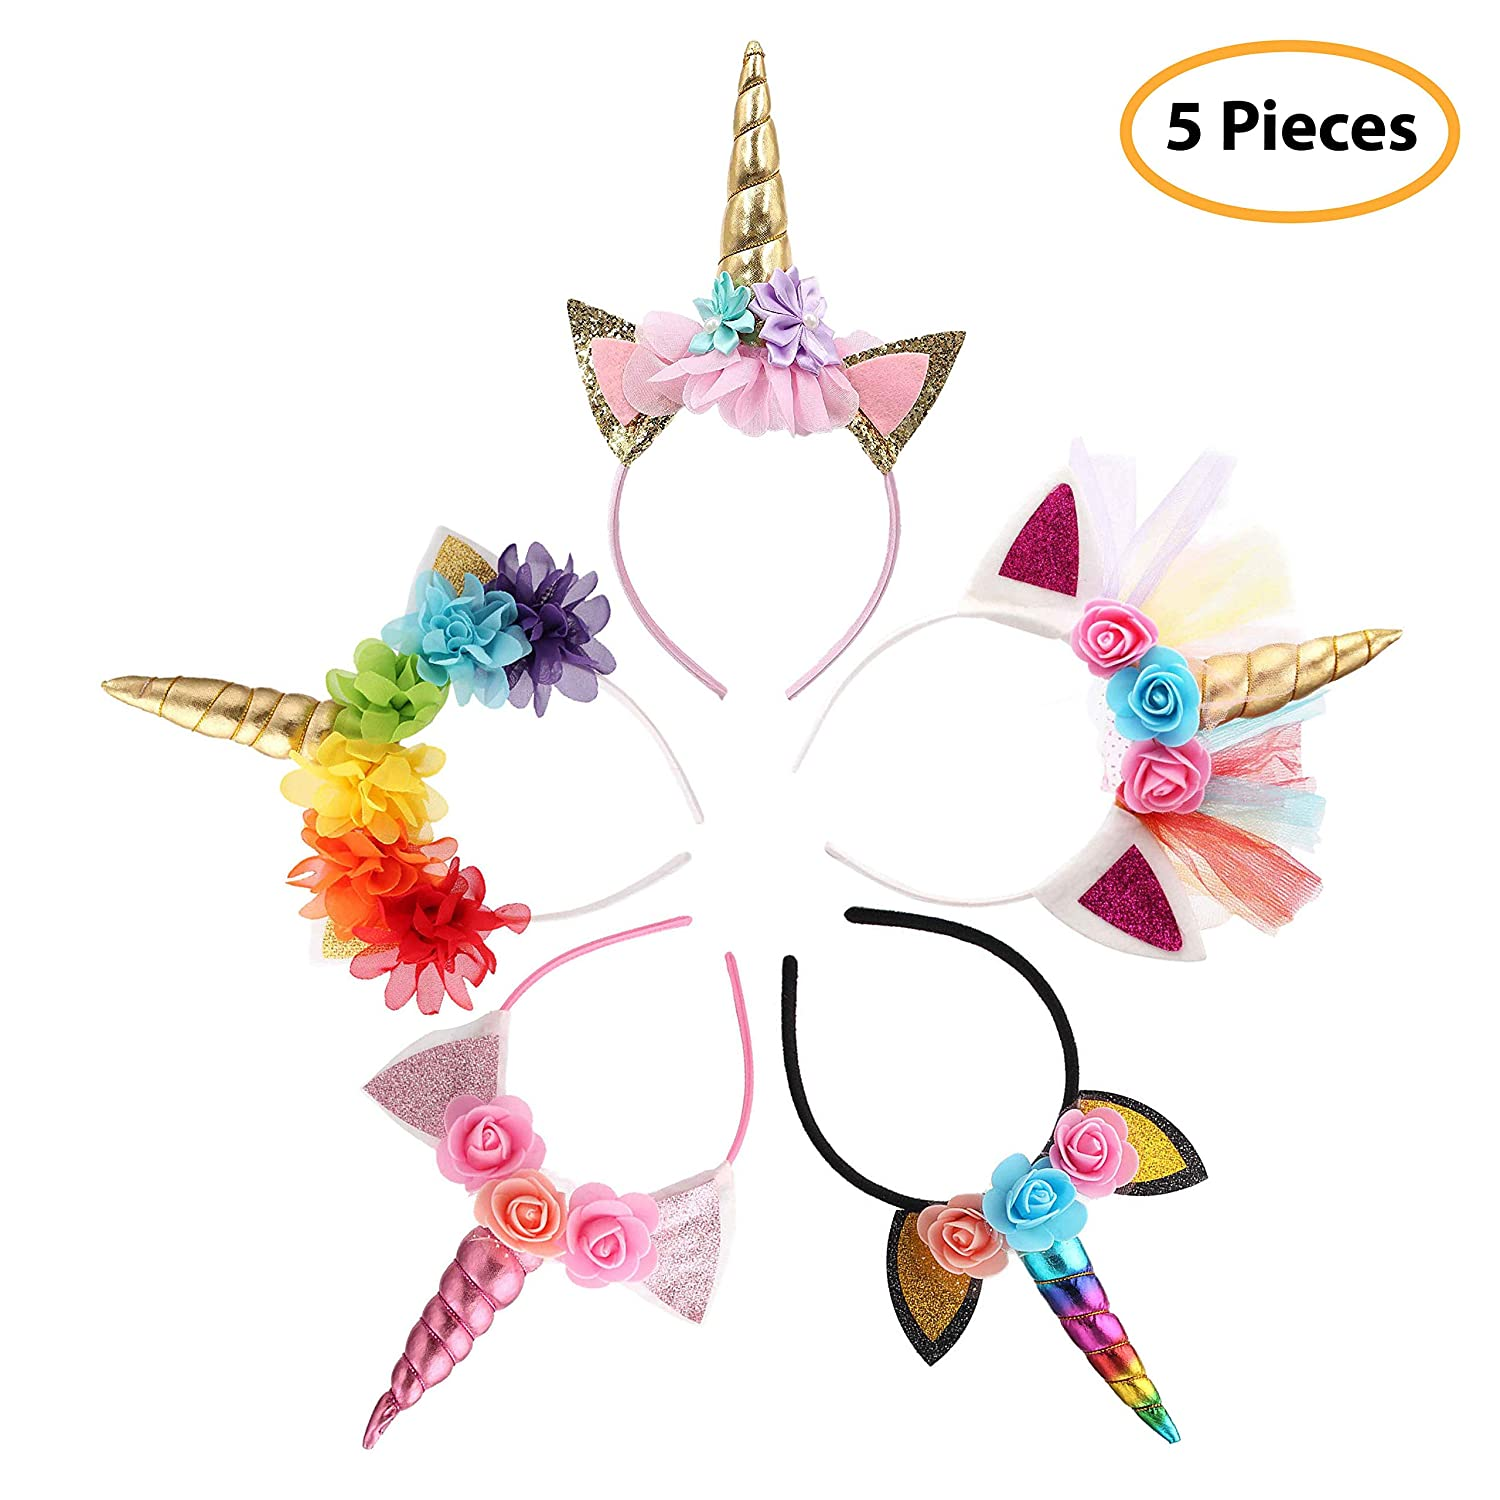 Unicorn Headband Unicorn Party Supply Party Favor Girl Hair Accessory 5 Pack